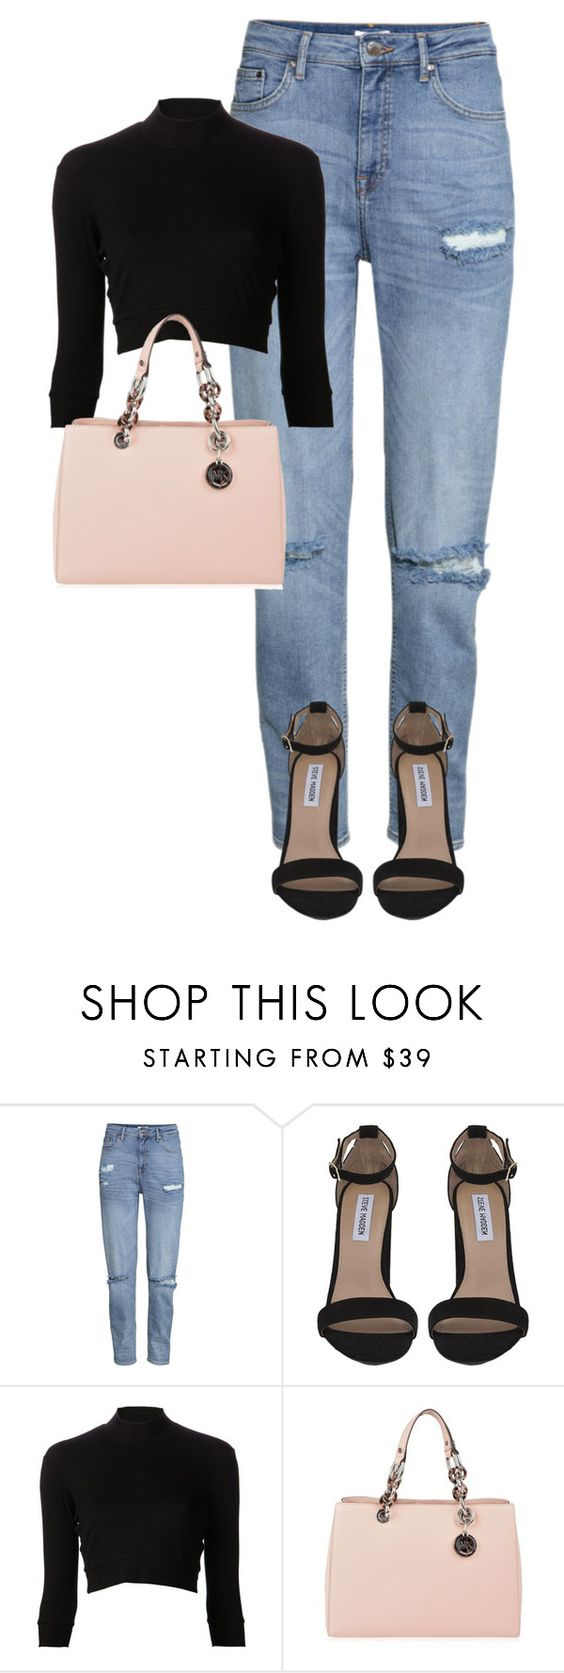 """Untitled #1671"" by gracerosborough ❤ liked on Polyvore featuring H&M, Steve Madden, Again and MICHAEL Michael Kors"